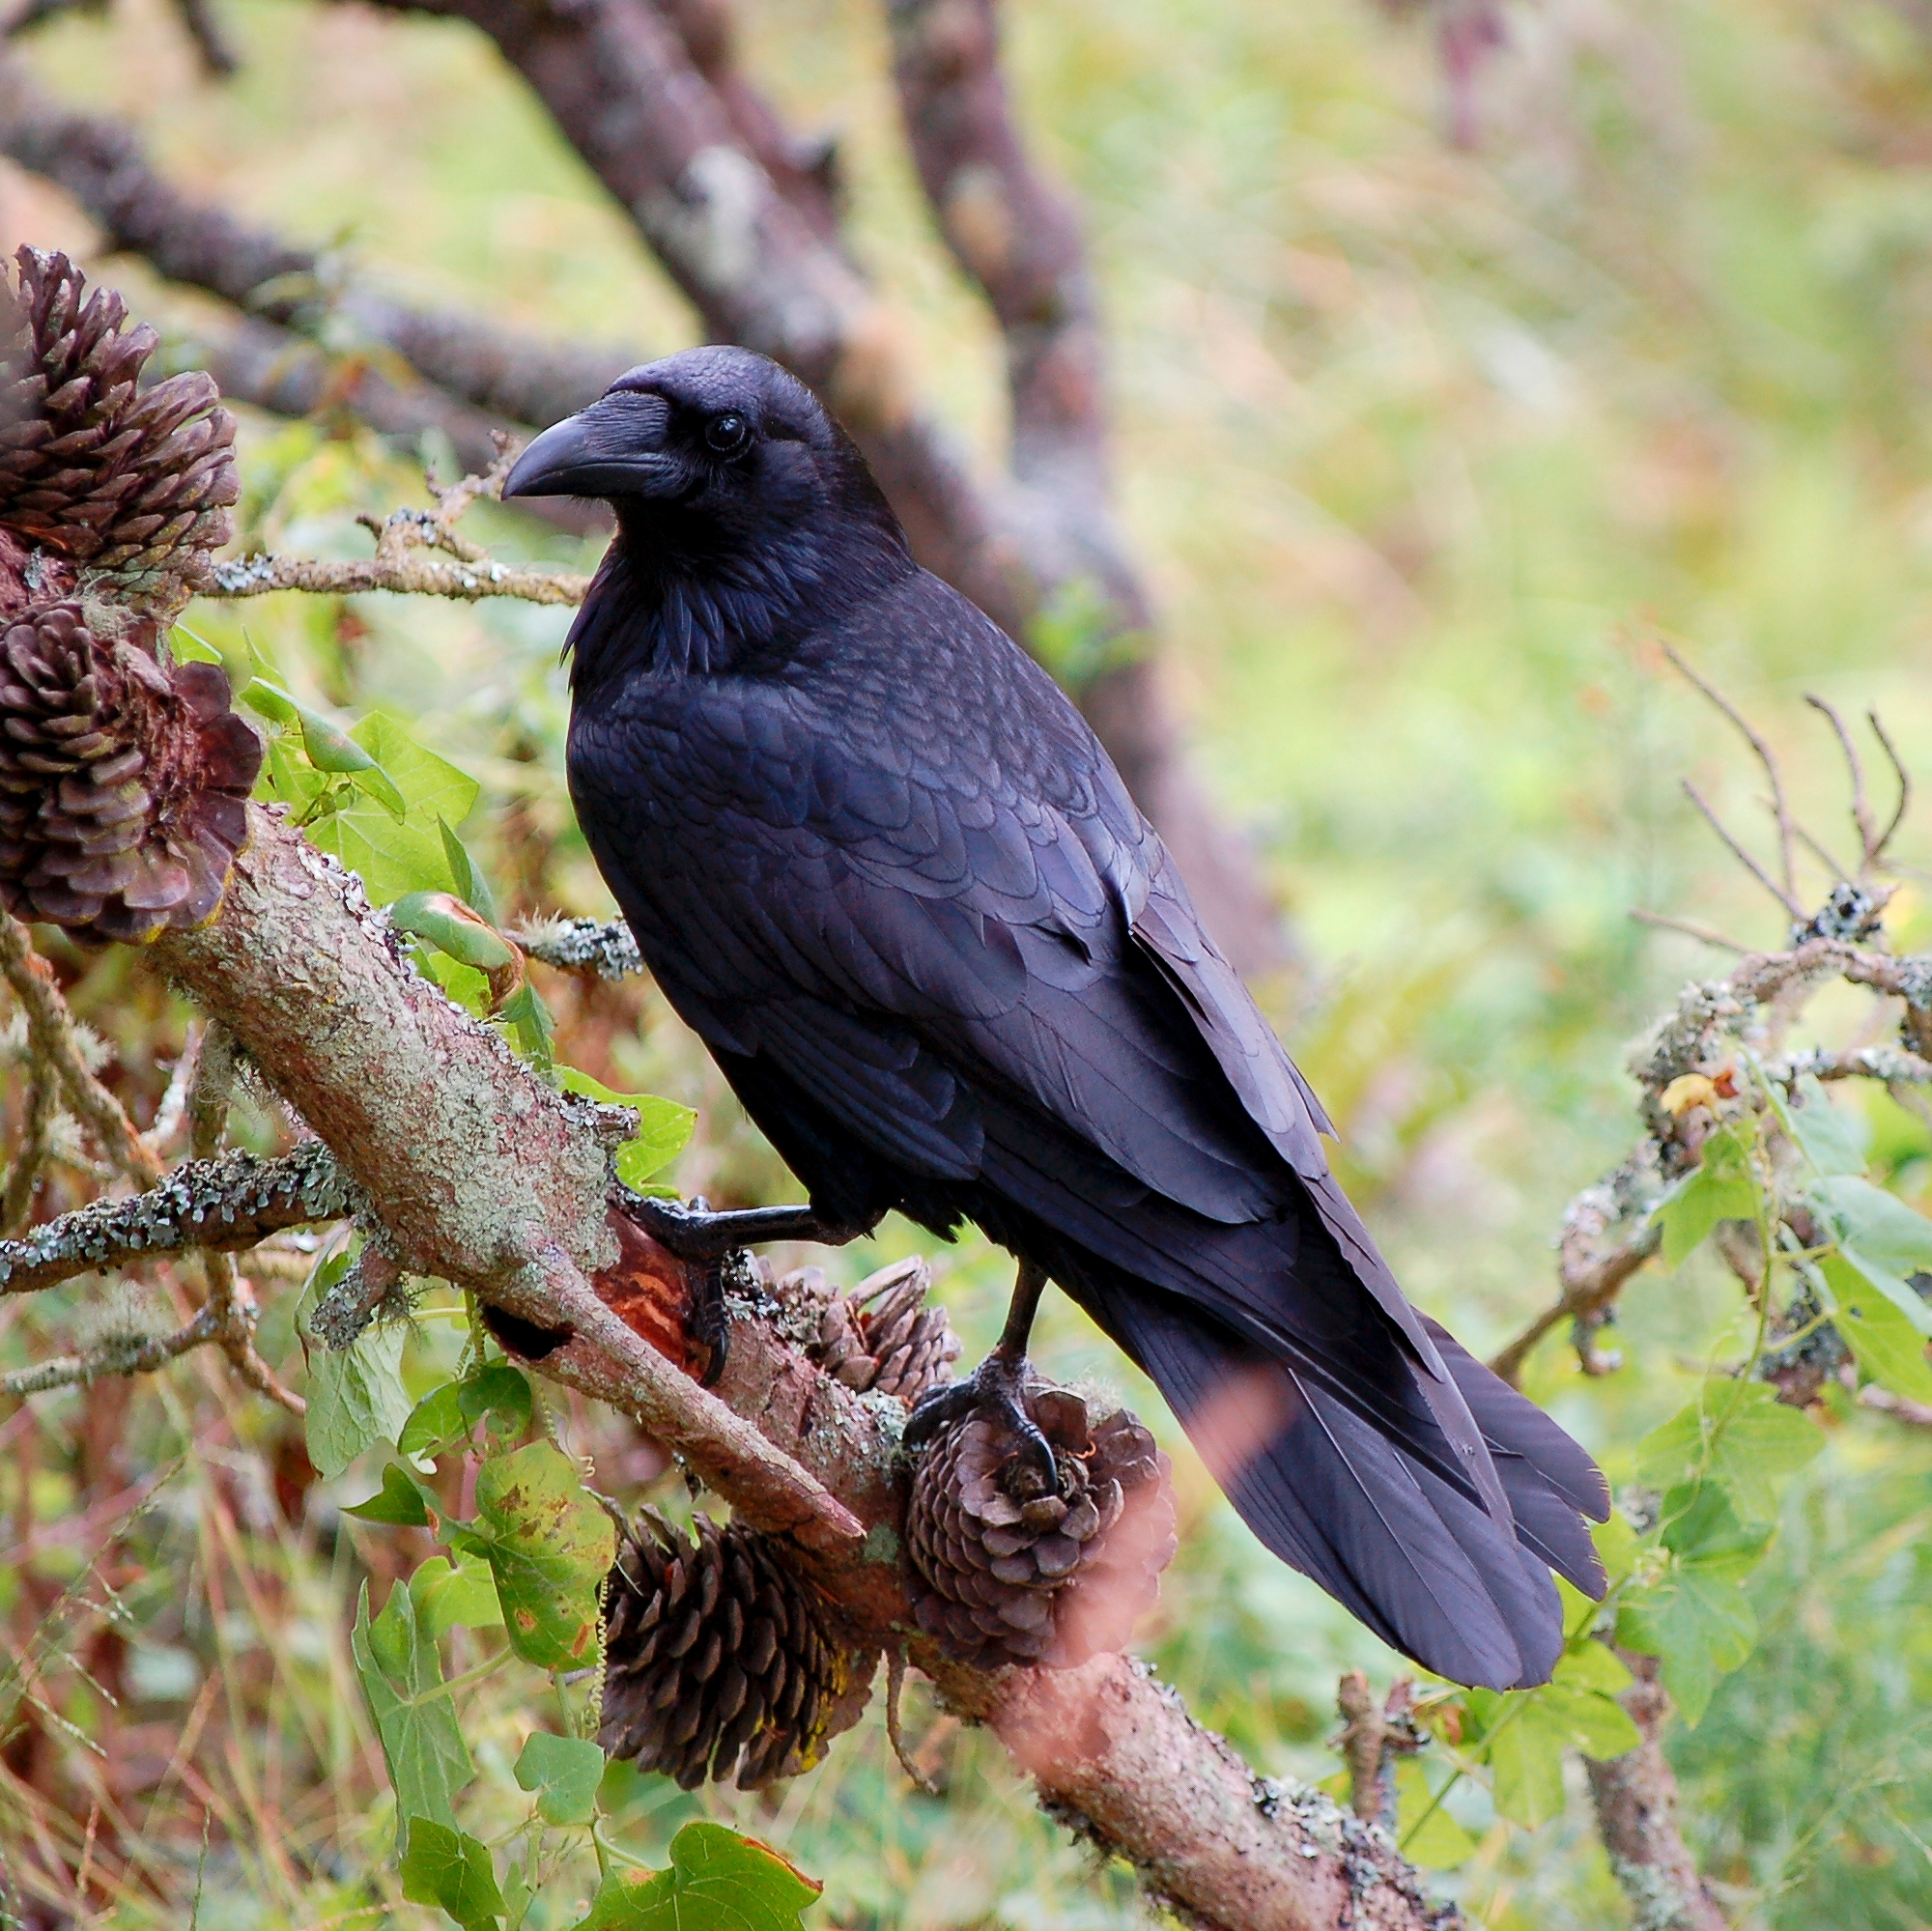 http://upload.wikimedia.org/wikipedia/commons/4/42/Female_adult_raven.jpg